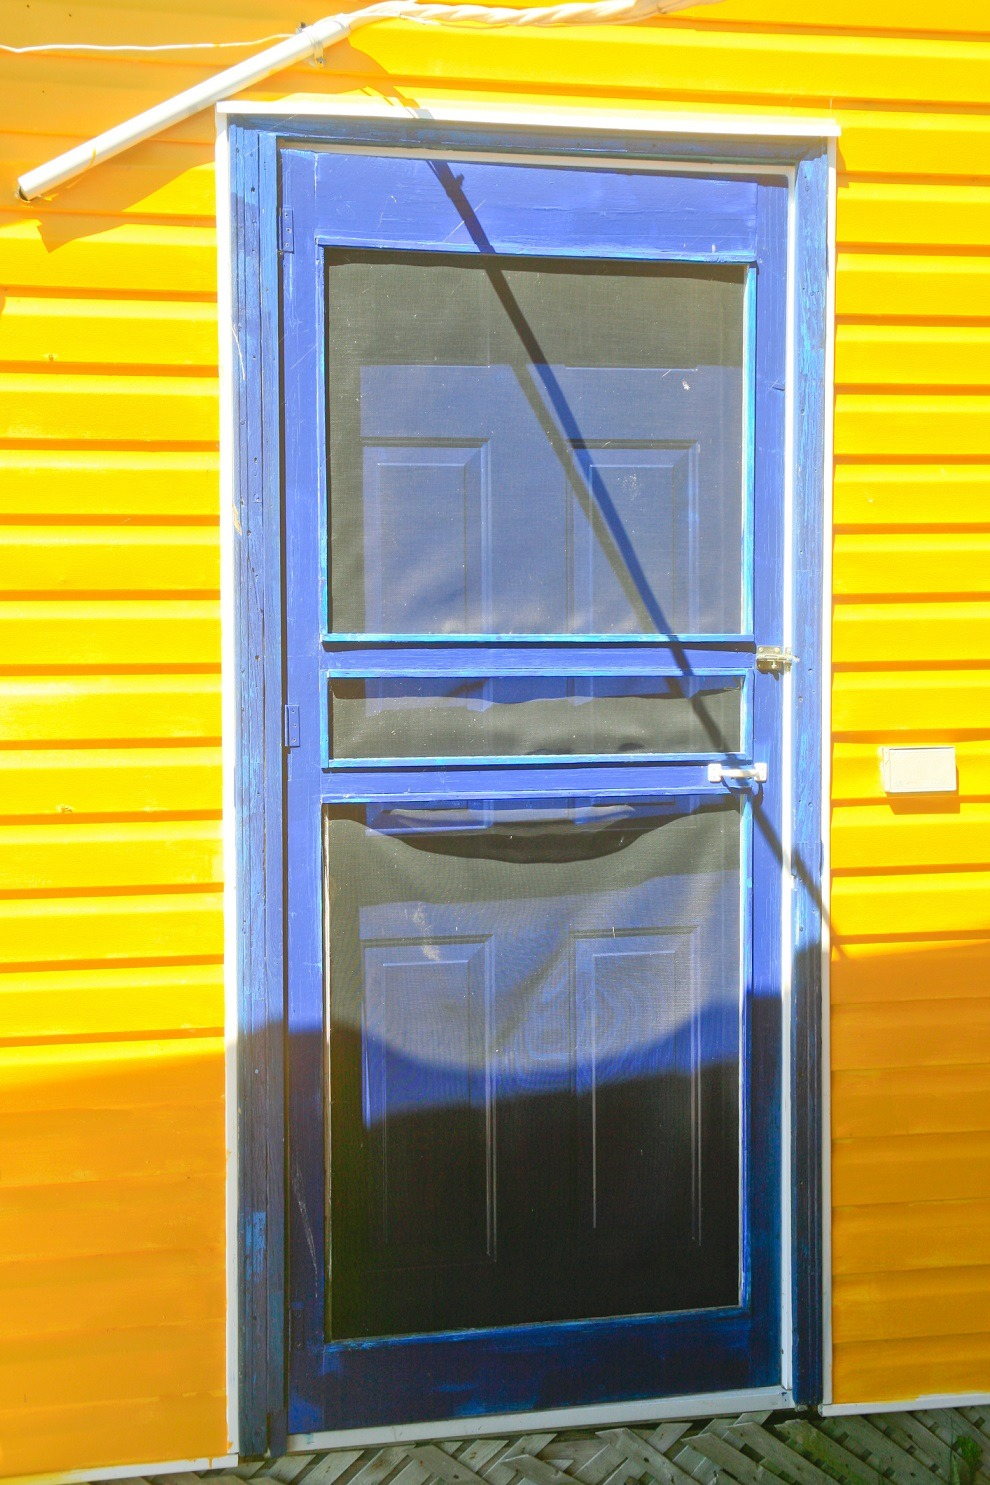 Blue screen door and yellow house